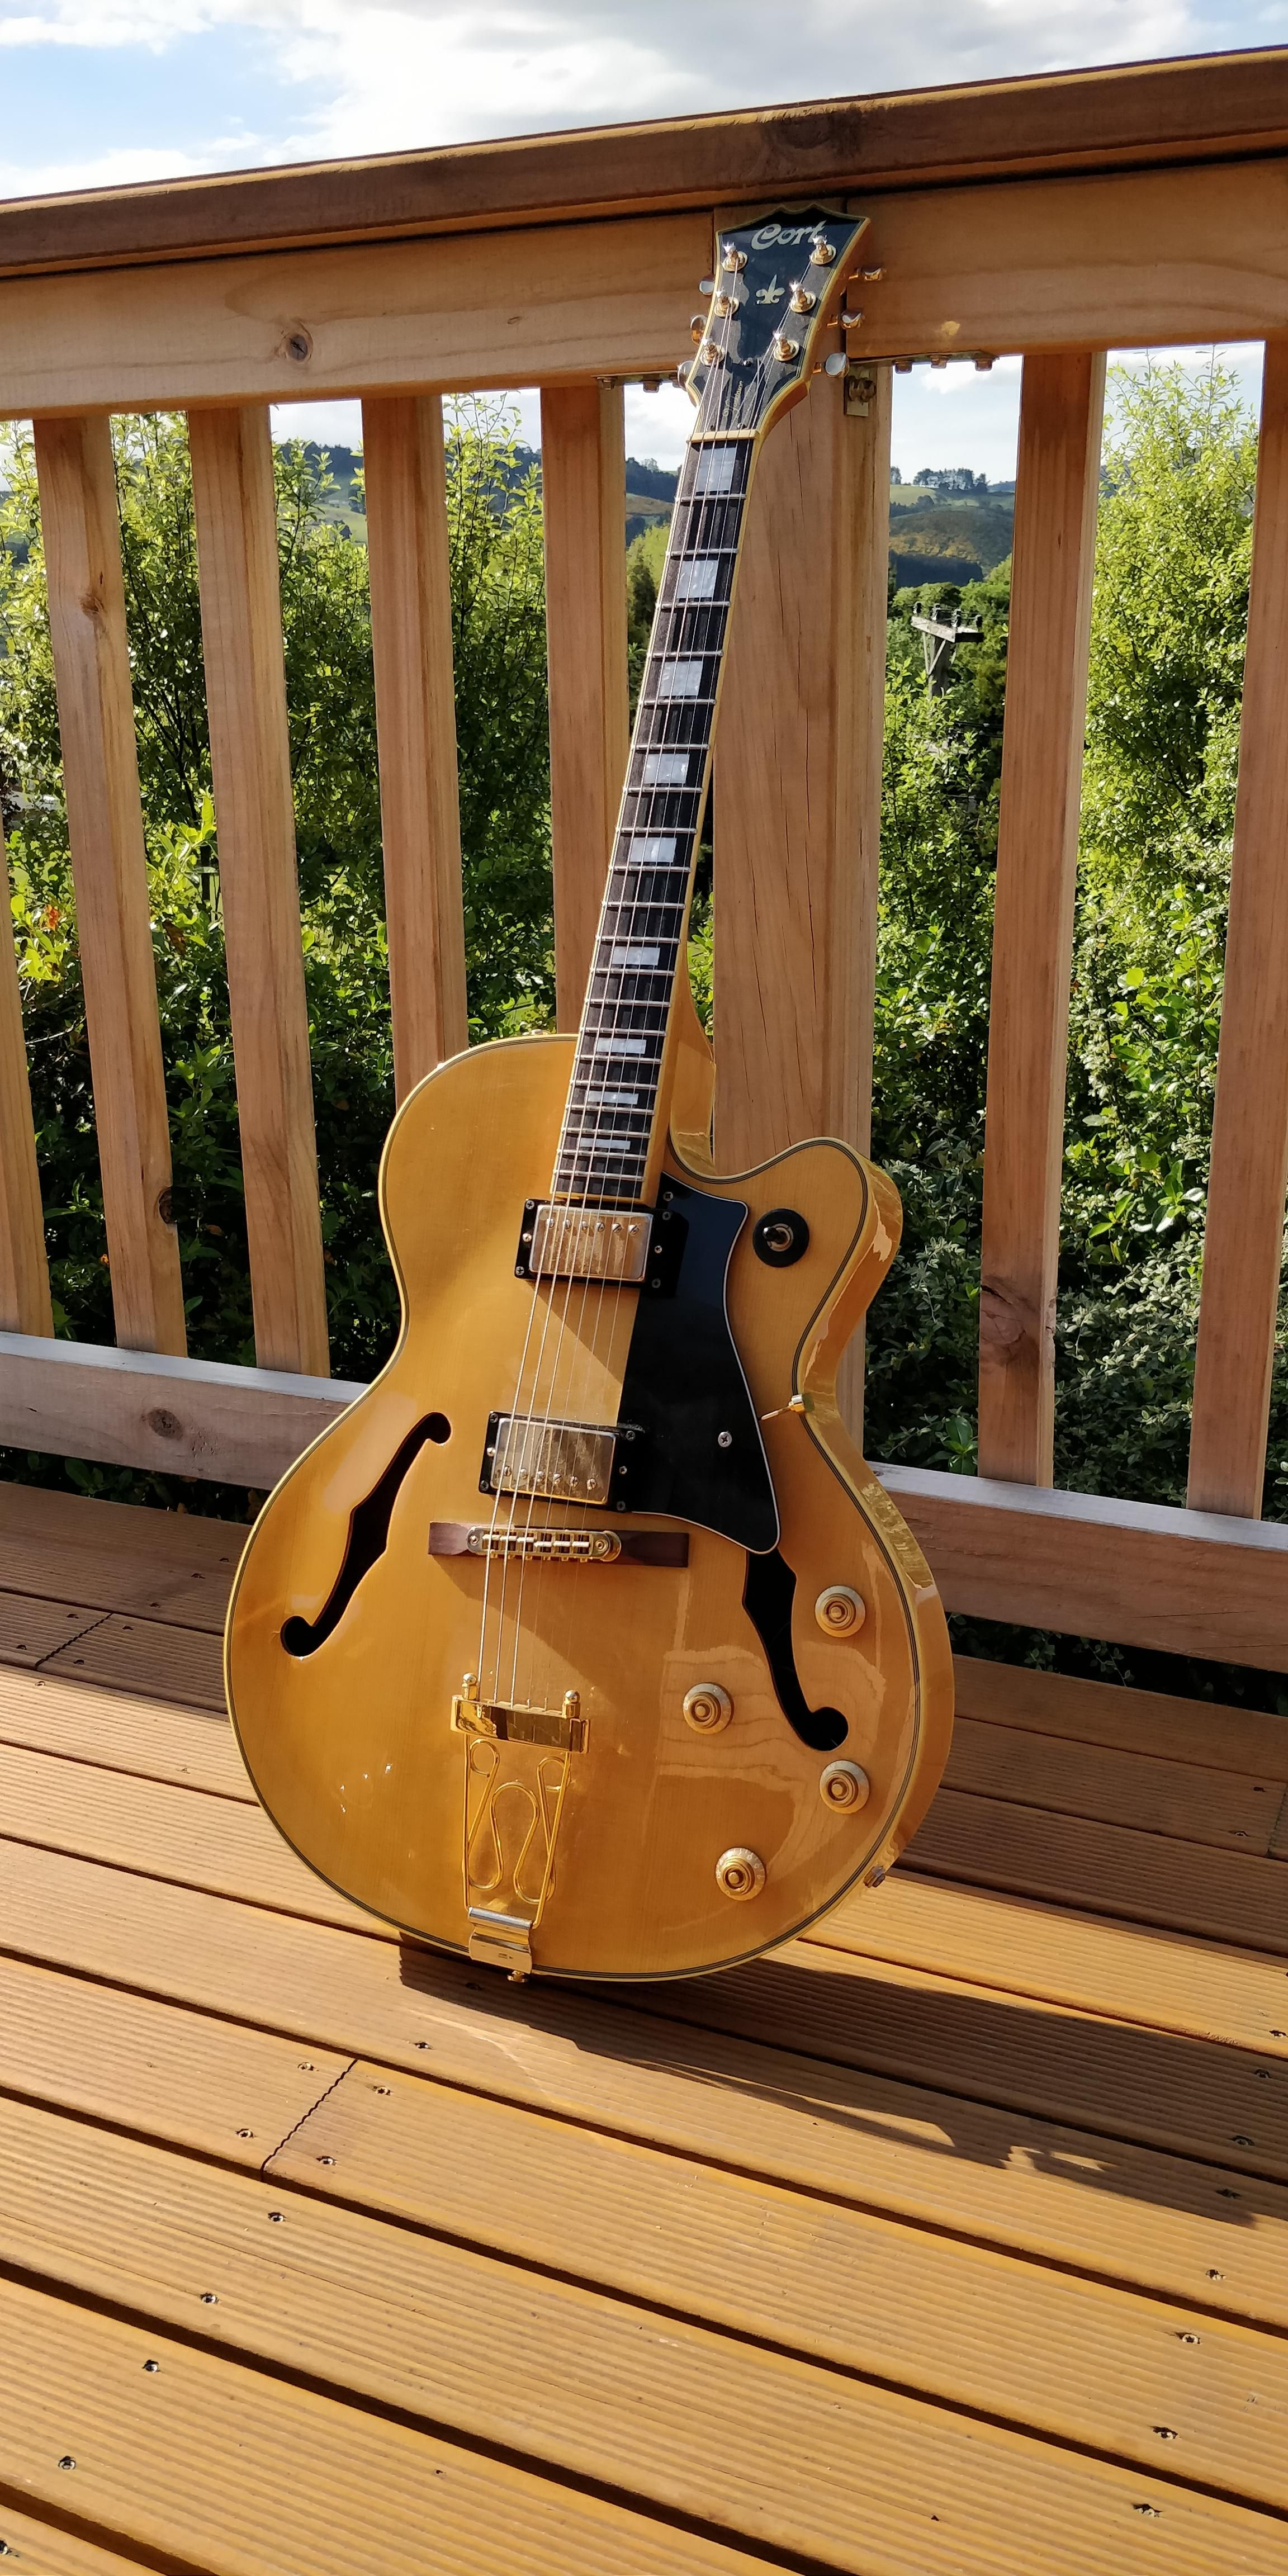 Ngd 07 Cort Yorktown Hollowbody With Low Action And Fast Neck Pickup Are Perfect This This Amazing Cort Guitars Yorktown Guitar